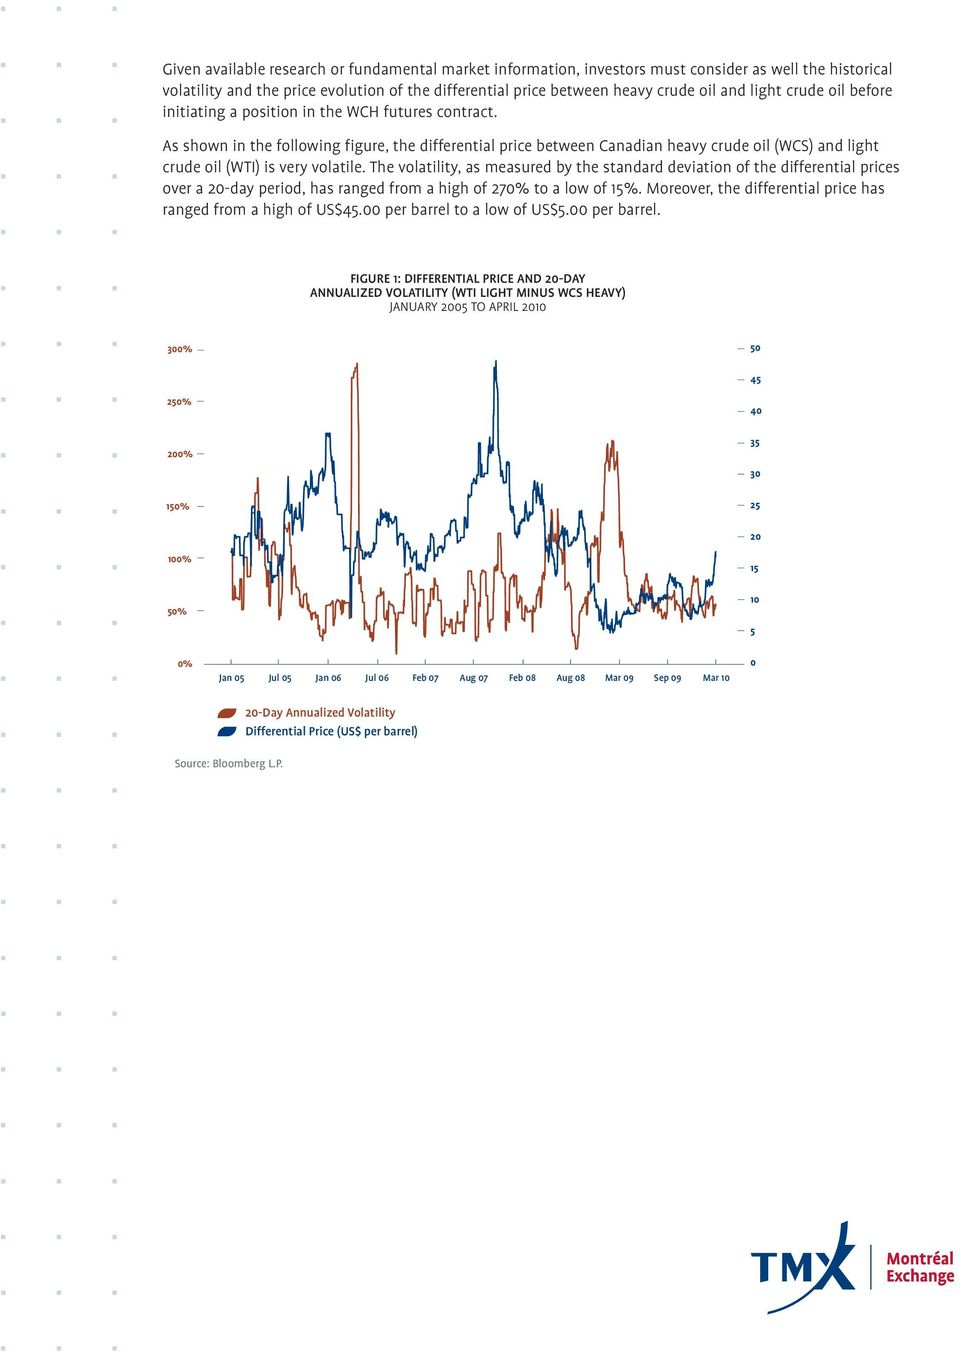 Producer Hedging the Production of Heavy Crude Oil - PDF